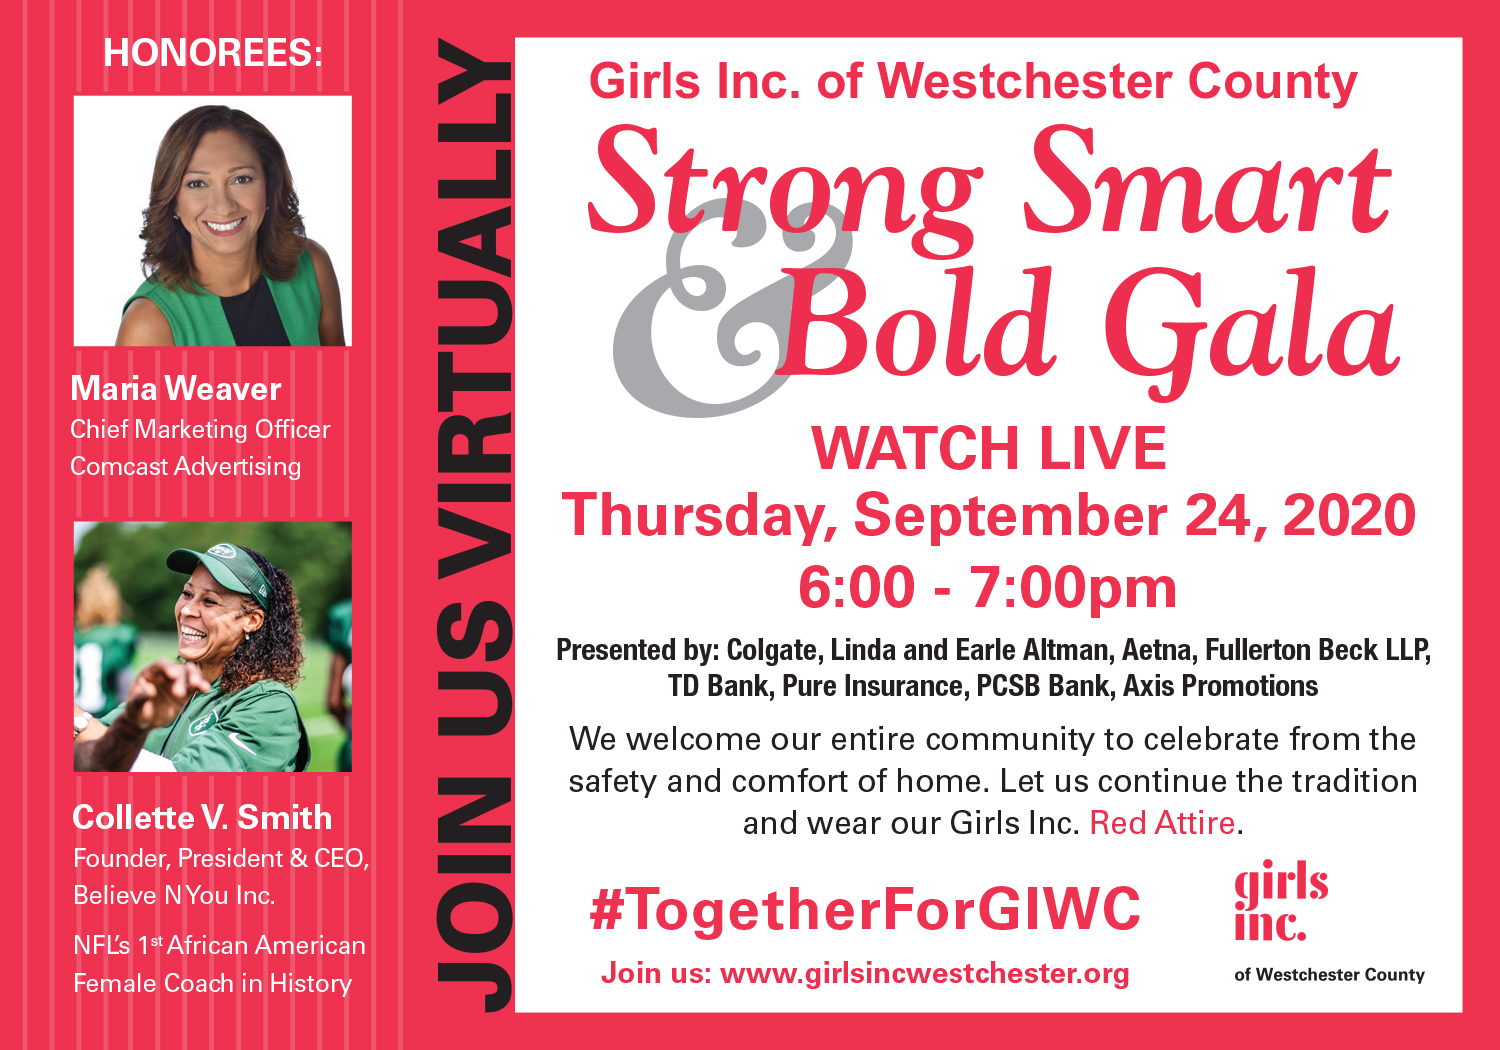 Girls Inc. of Westchester County Strong, Smart & Bold Virtual Gala